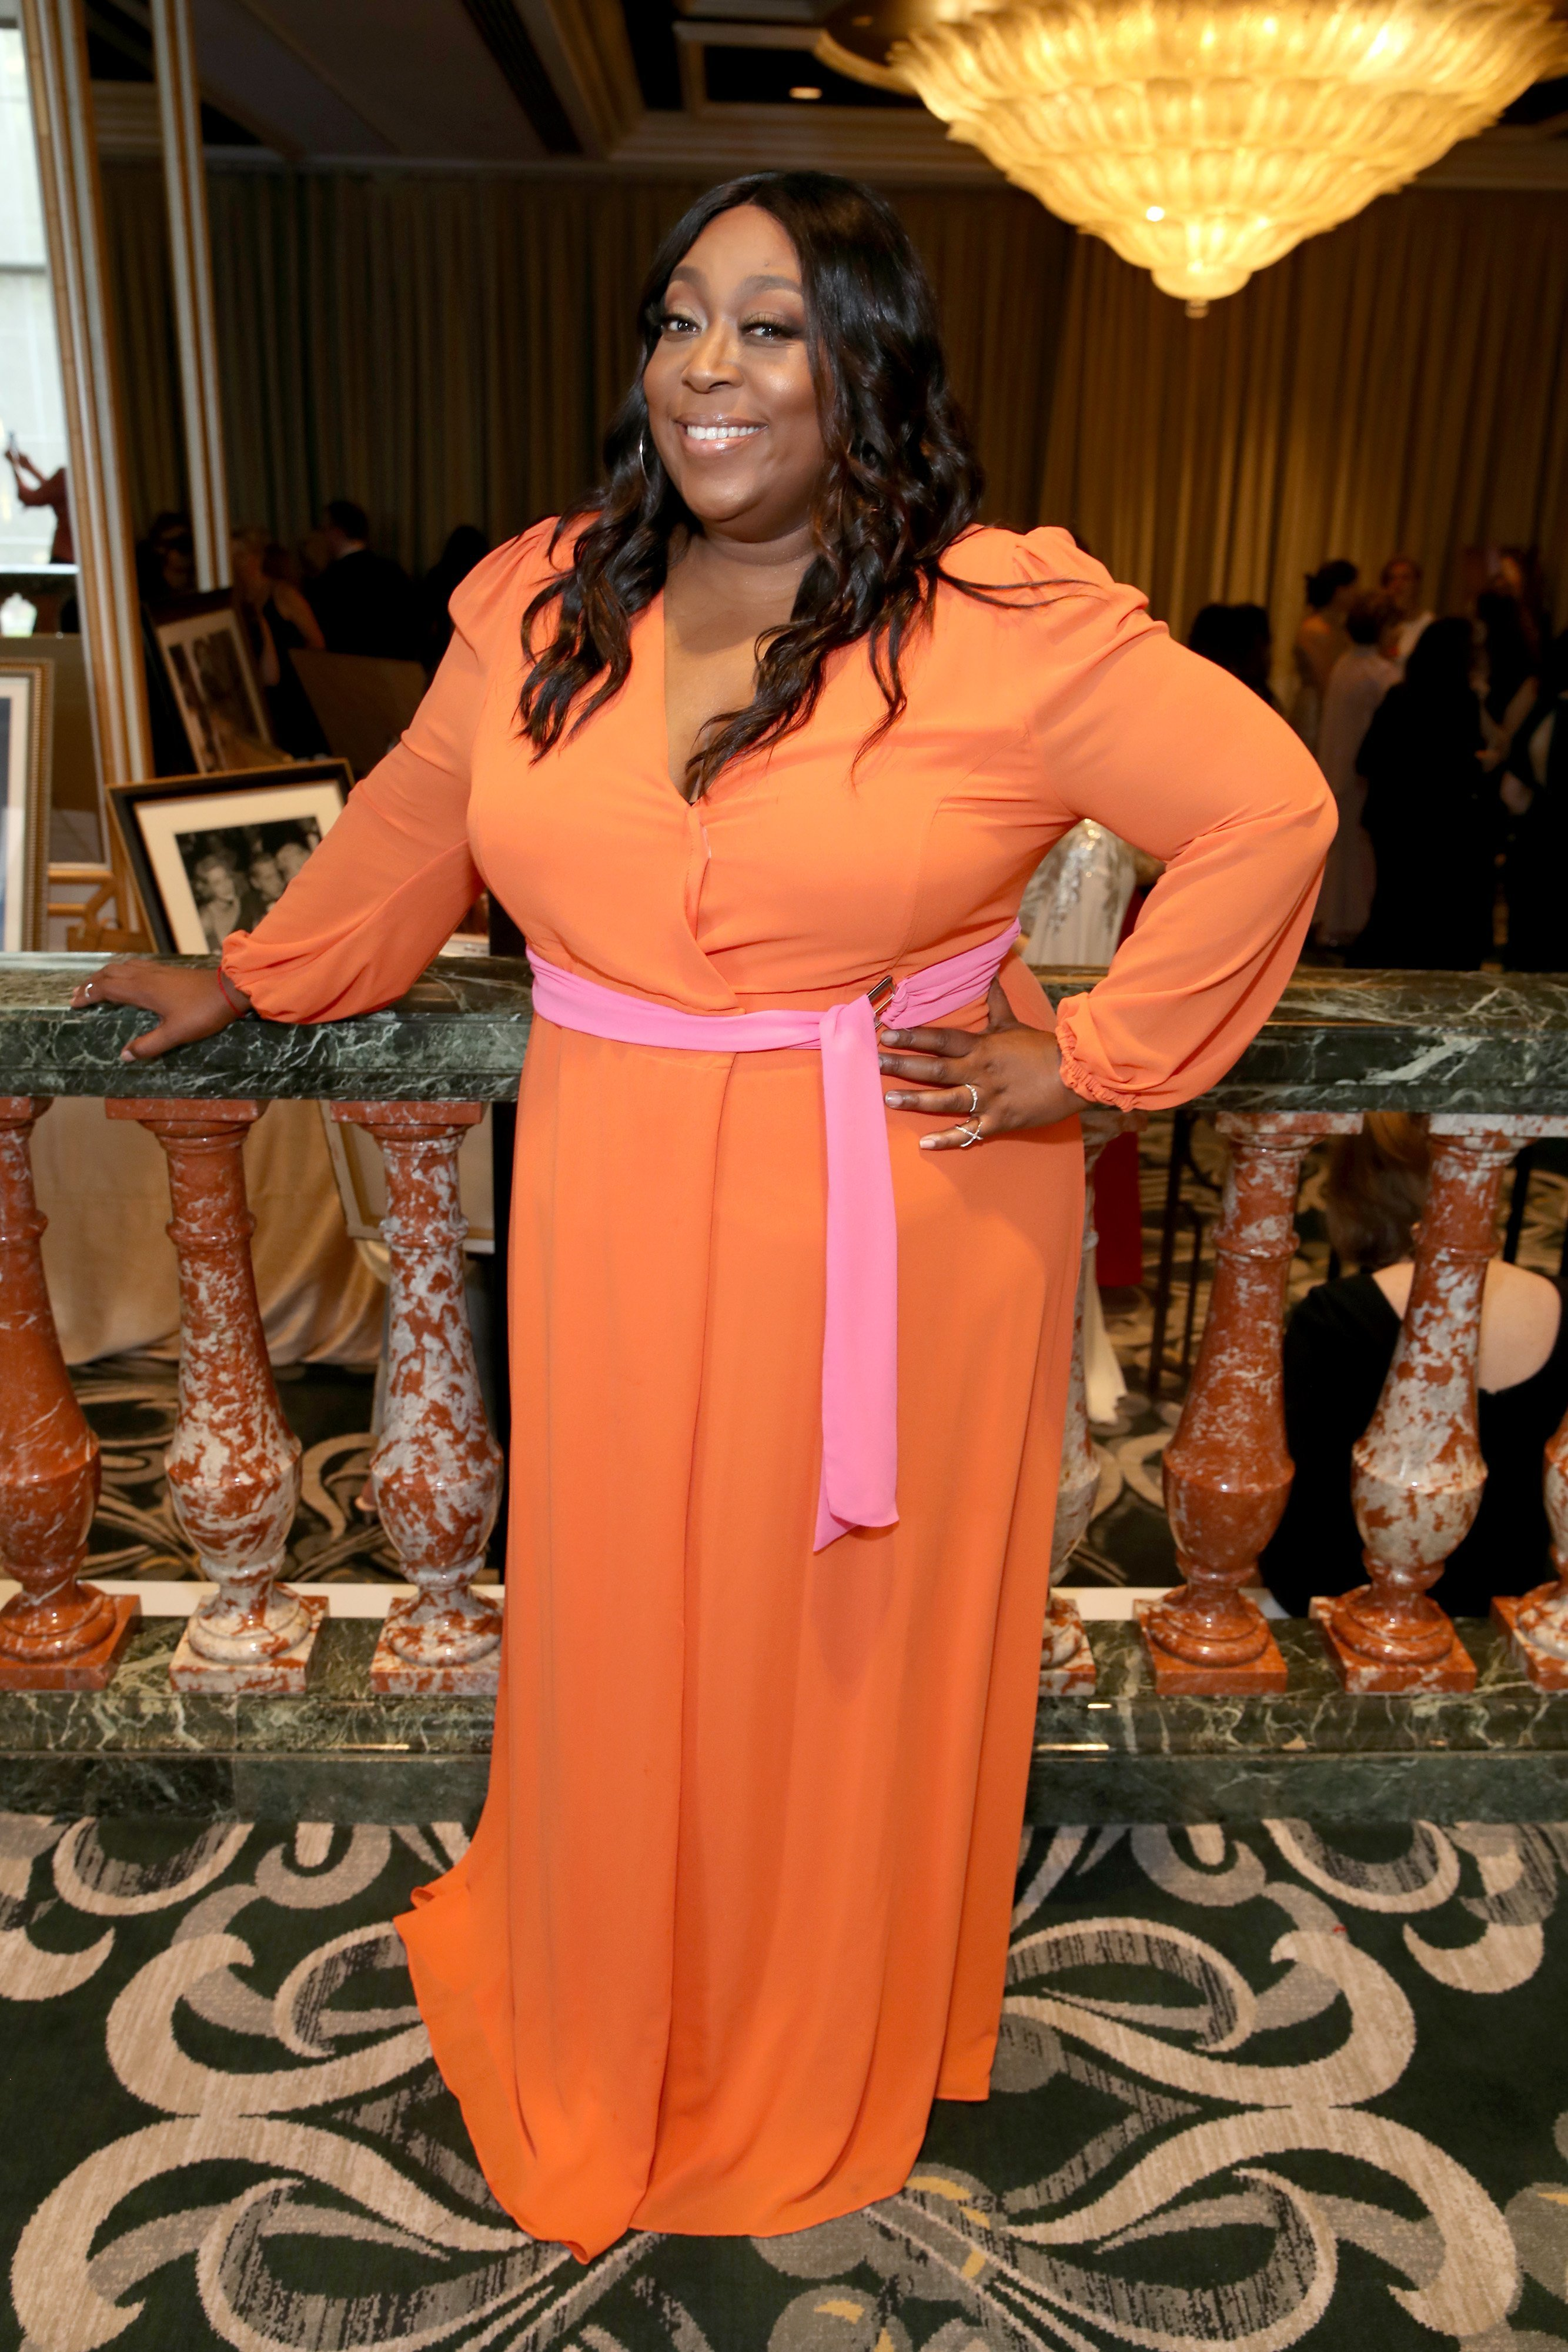 Loni Love at the 44th Annual Gracies Awards on May 21, 2019 in California | Photo: Getty Images